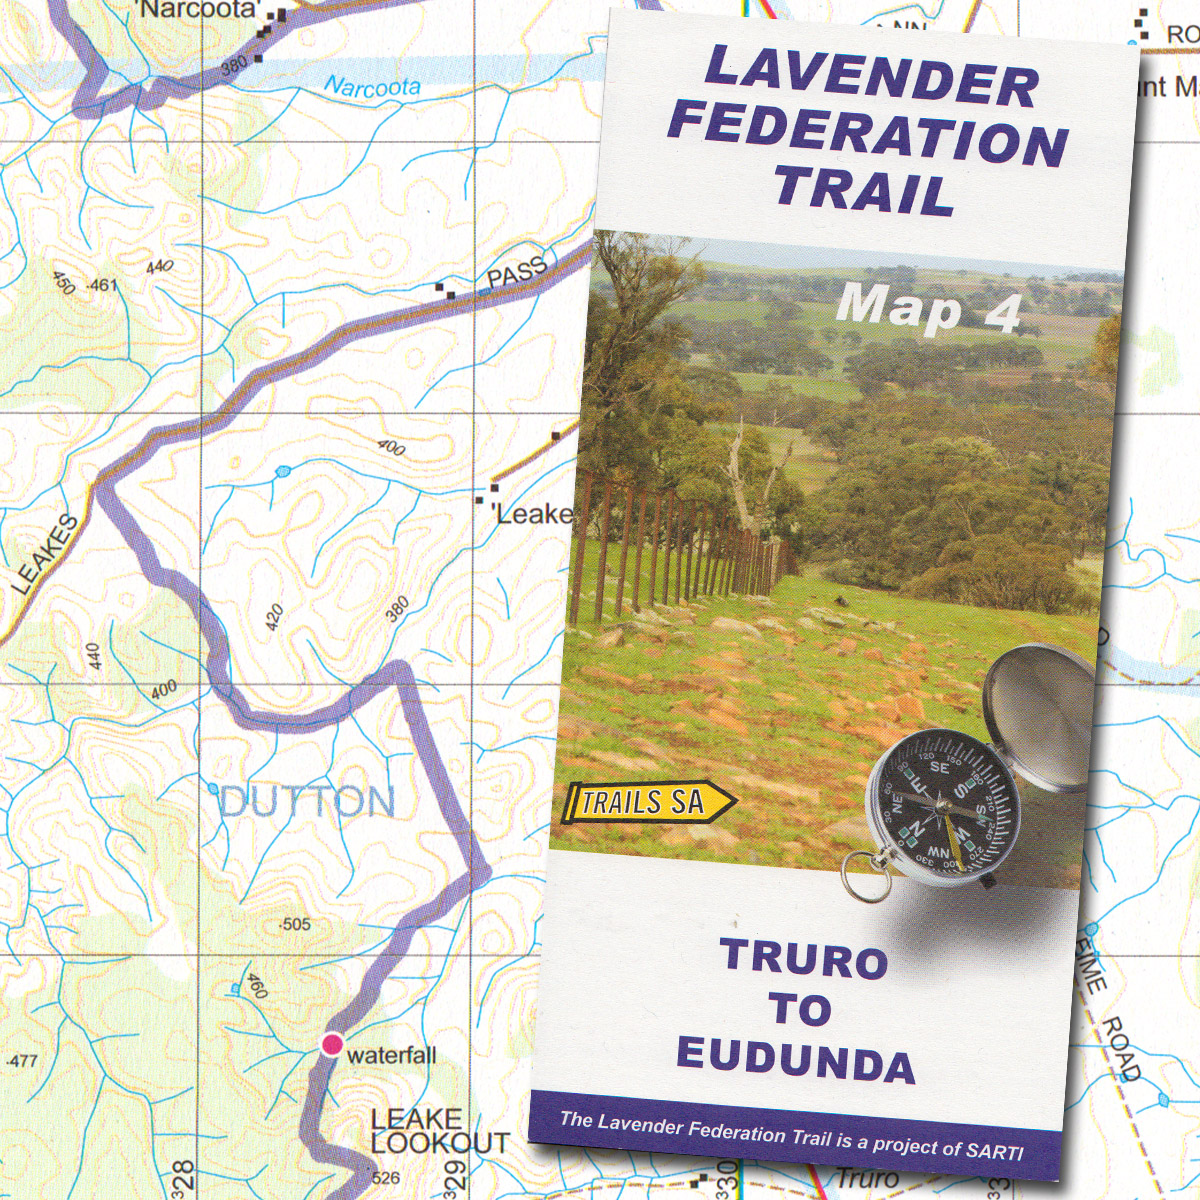 Lavender Federation Trail Map 4 Truro to Eudunda The Friends of